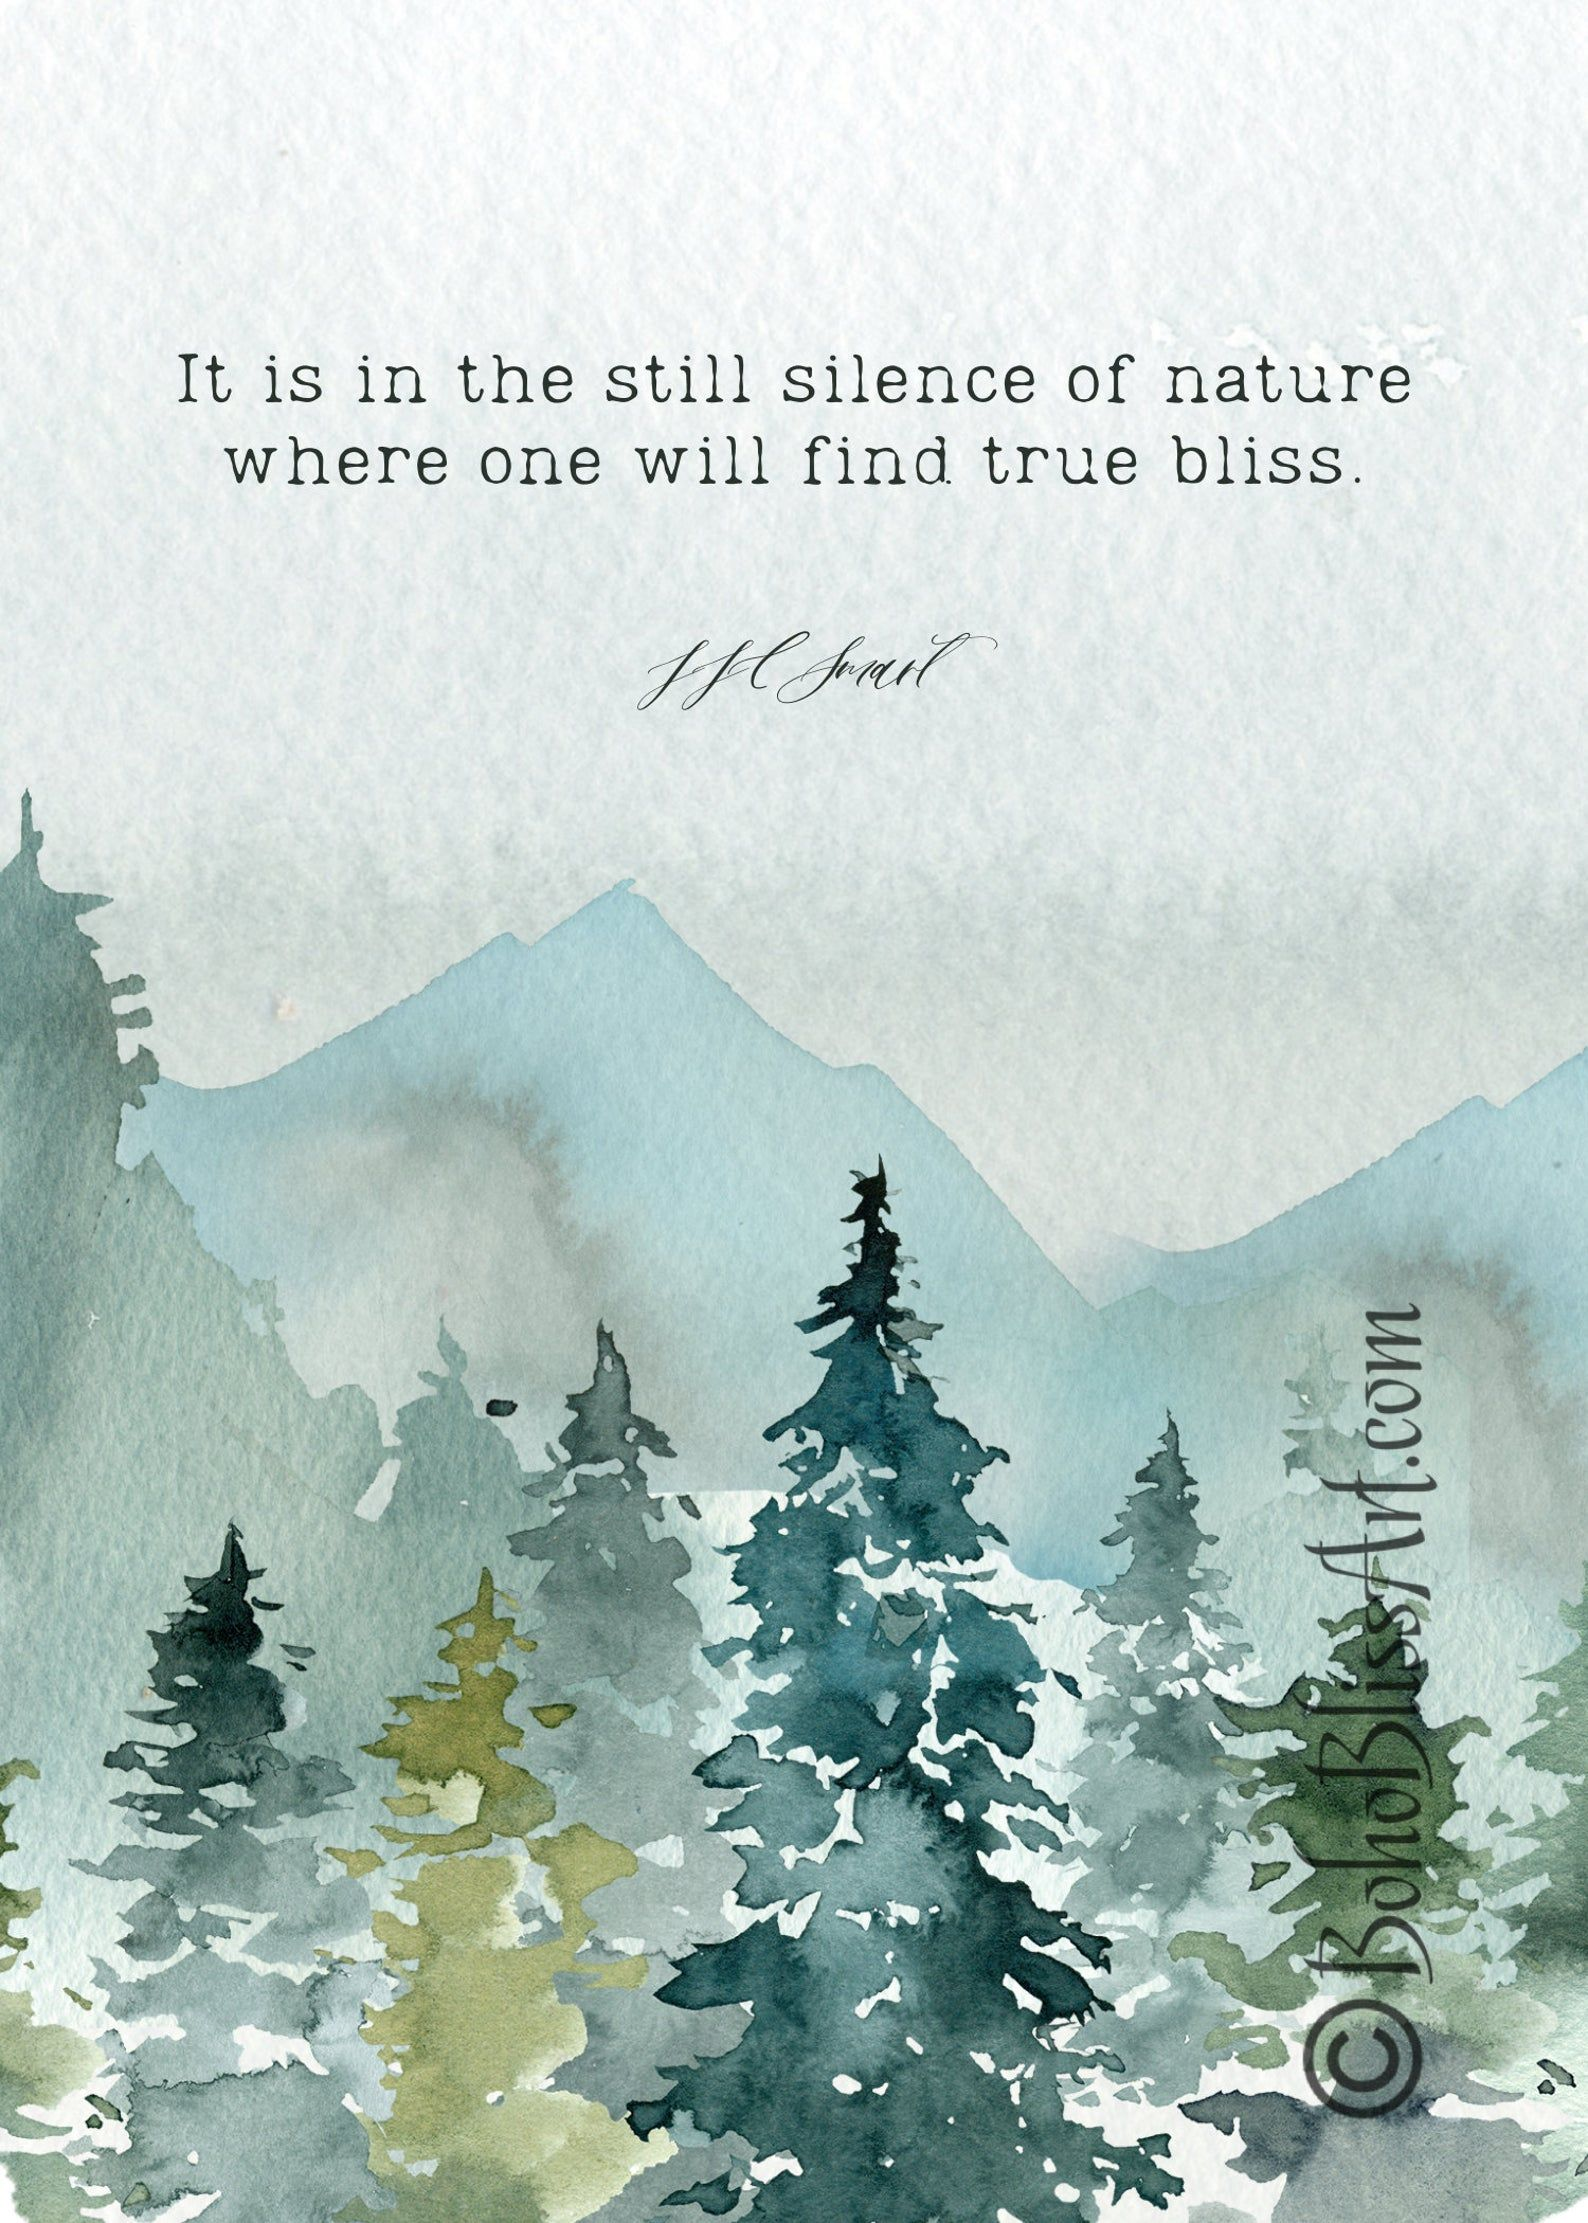 J.J.C. Smart Quote: It is in the still silence of